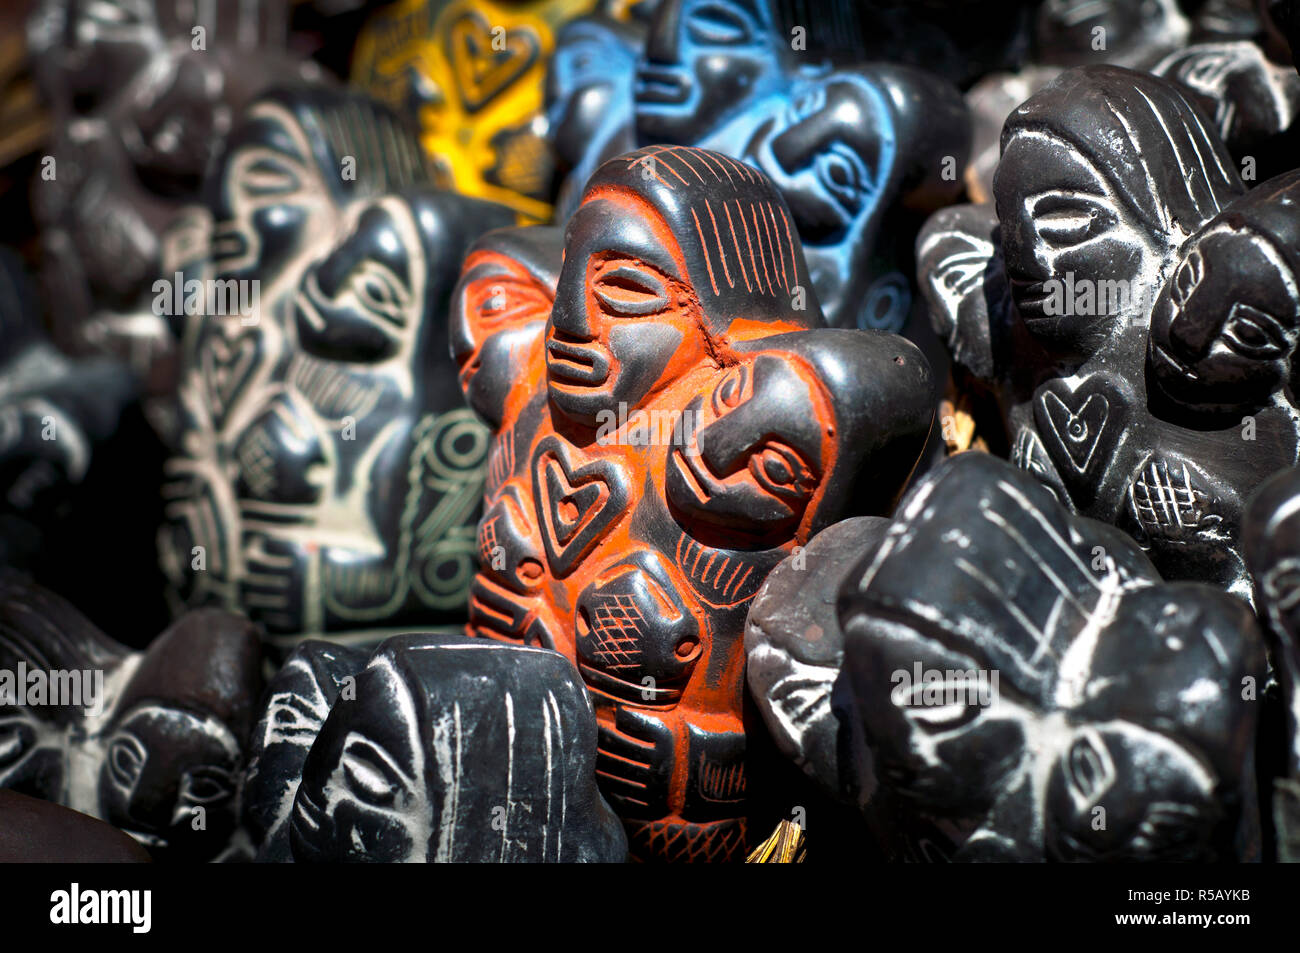 Witches' Market, Mercado de las Brujas, Pachamama Statues For Sale, Mother Earth Goddess Of The Indigenous Aymarans, La Paz, Bolivia - Stock Image